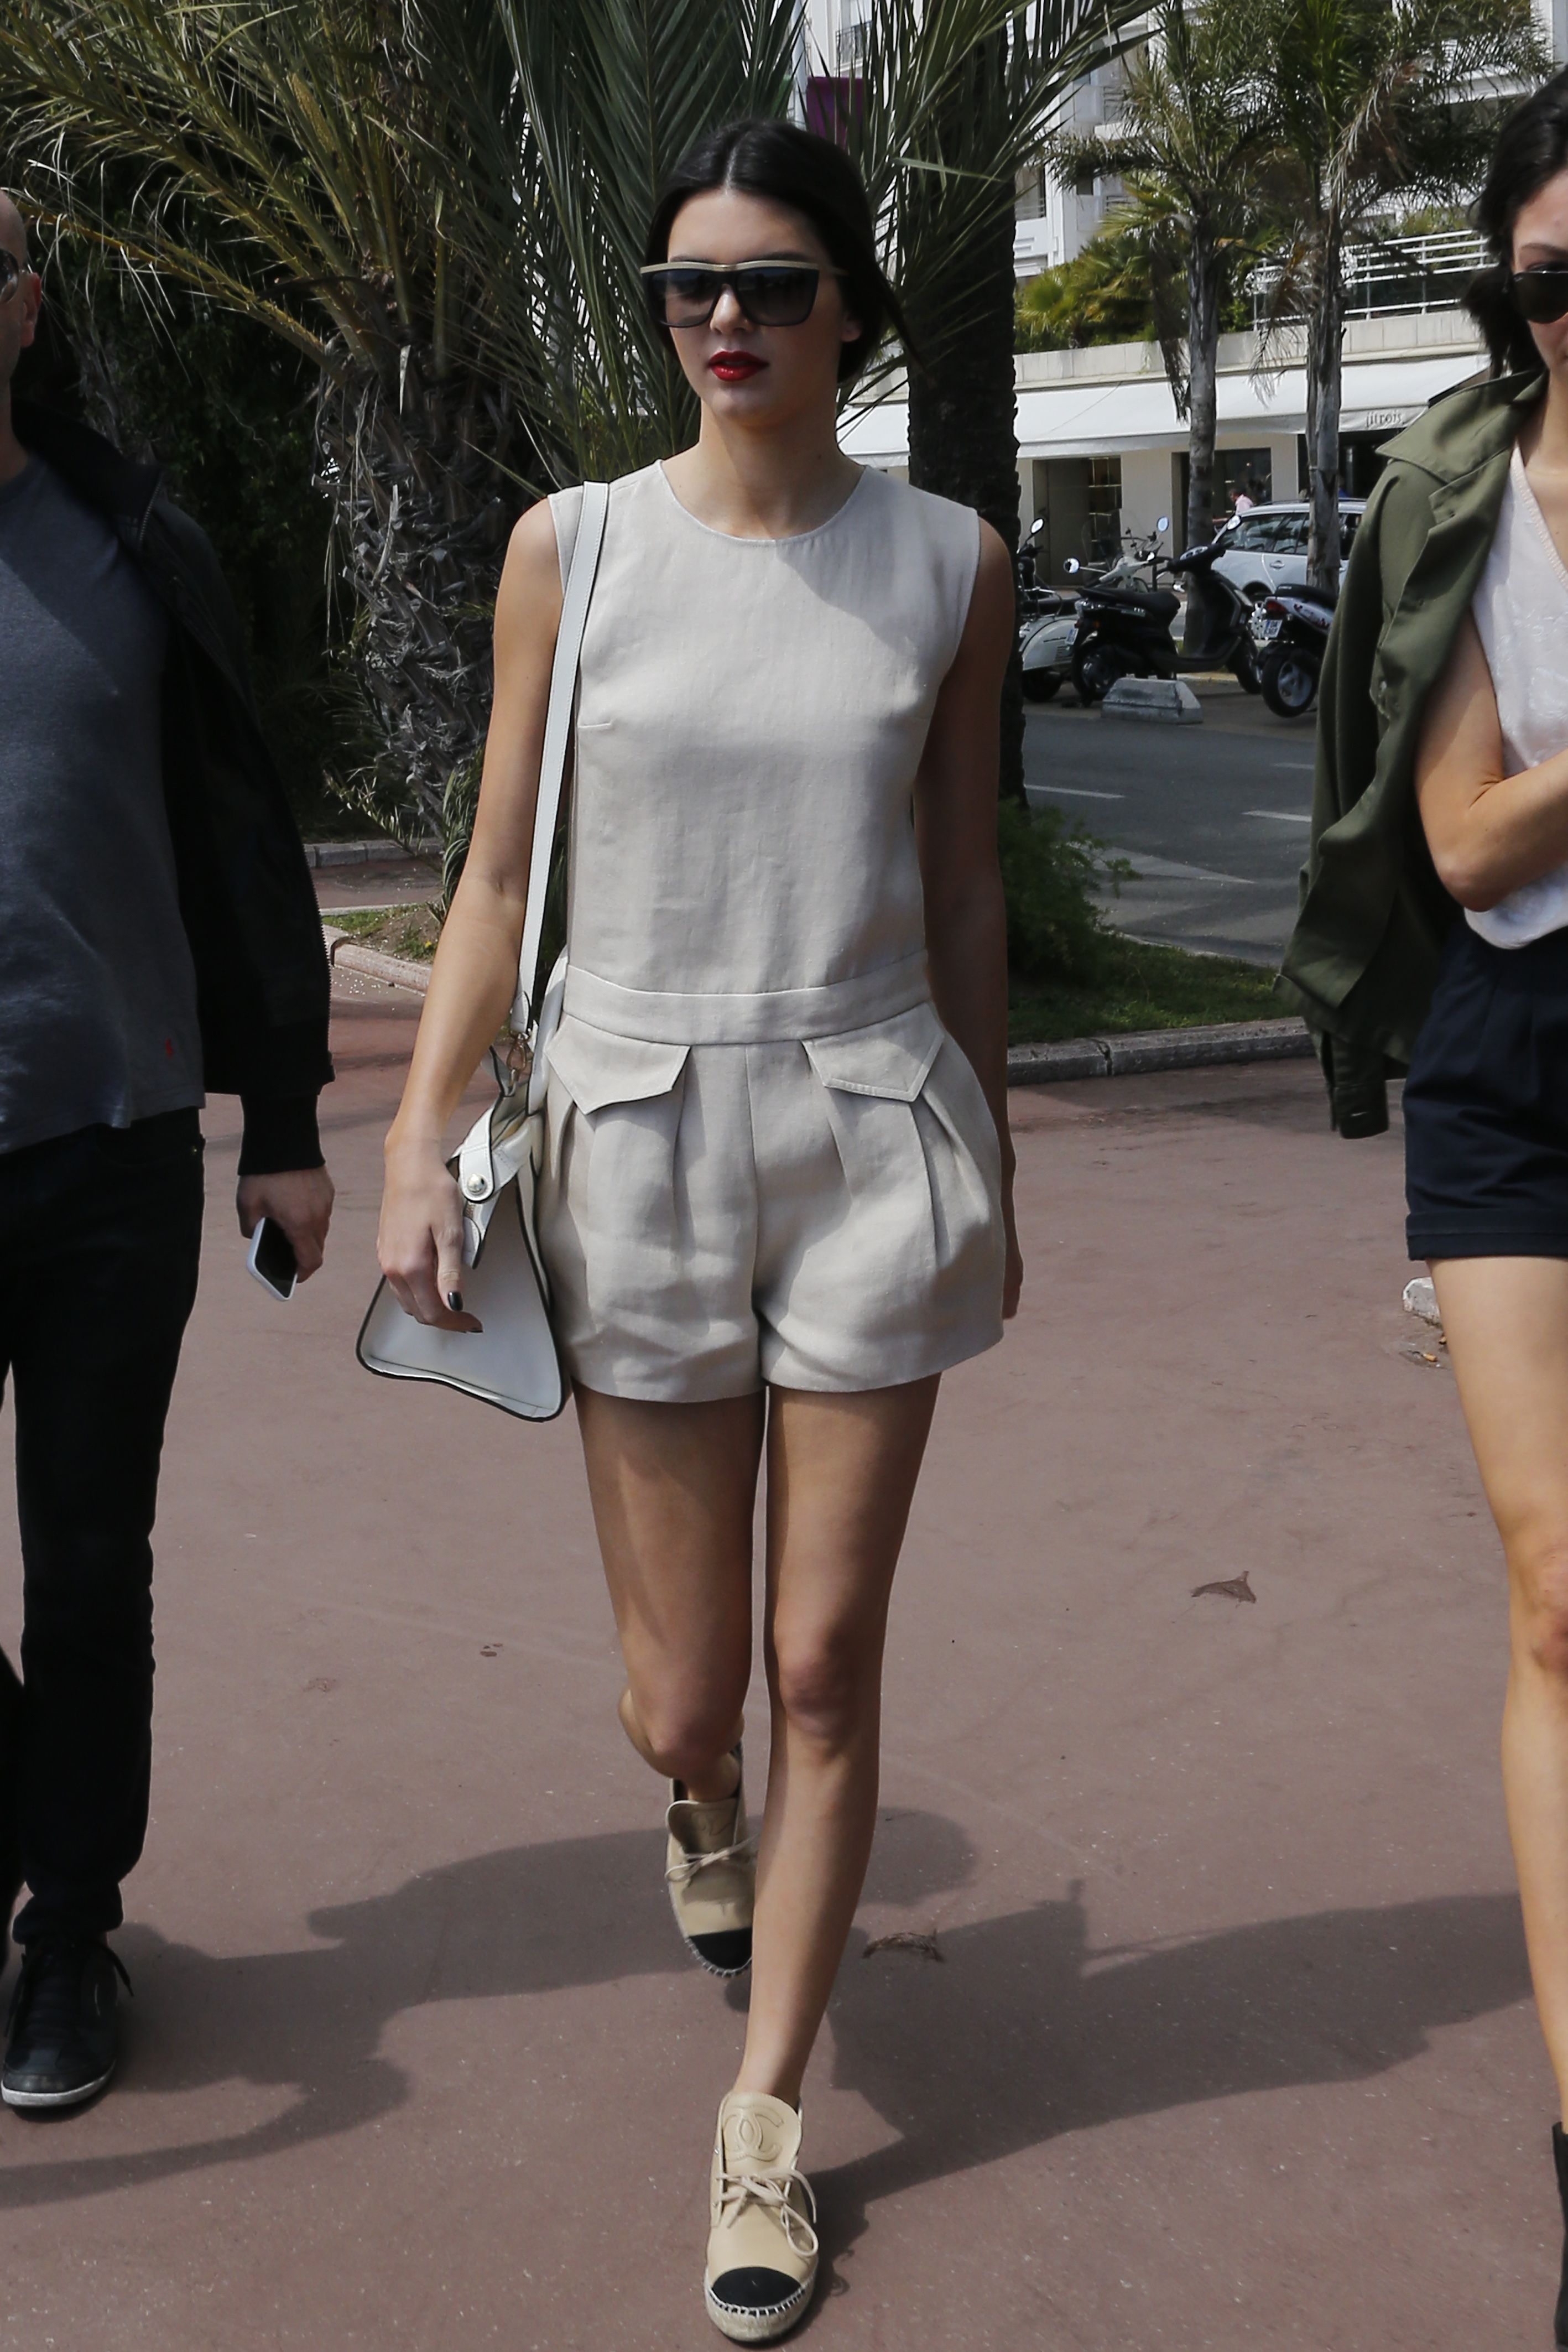 f3da959ec229 Socialite   Model Kendall Jenner has been spotted in Cannes with a Spring  2014 Longchamp playsuit   the